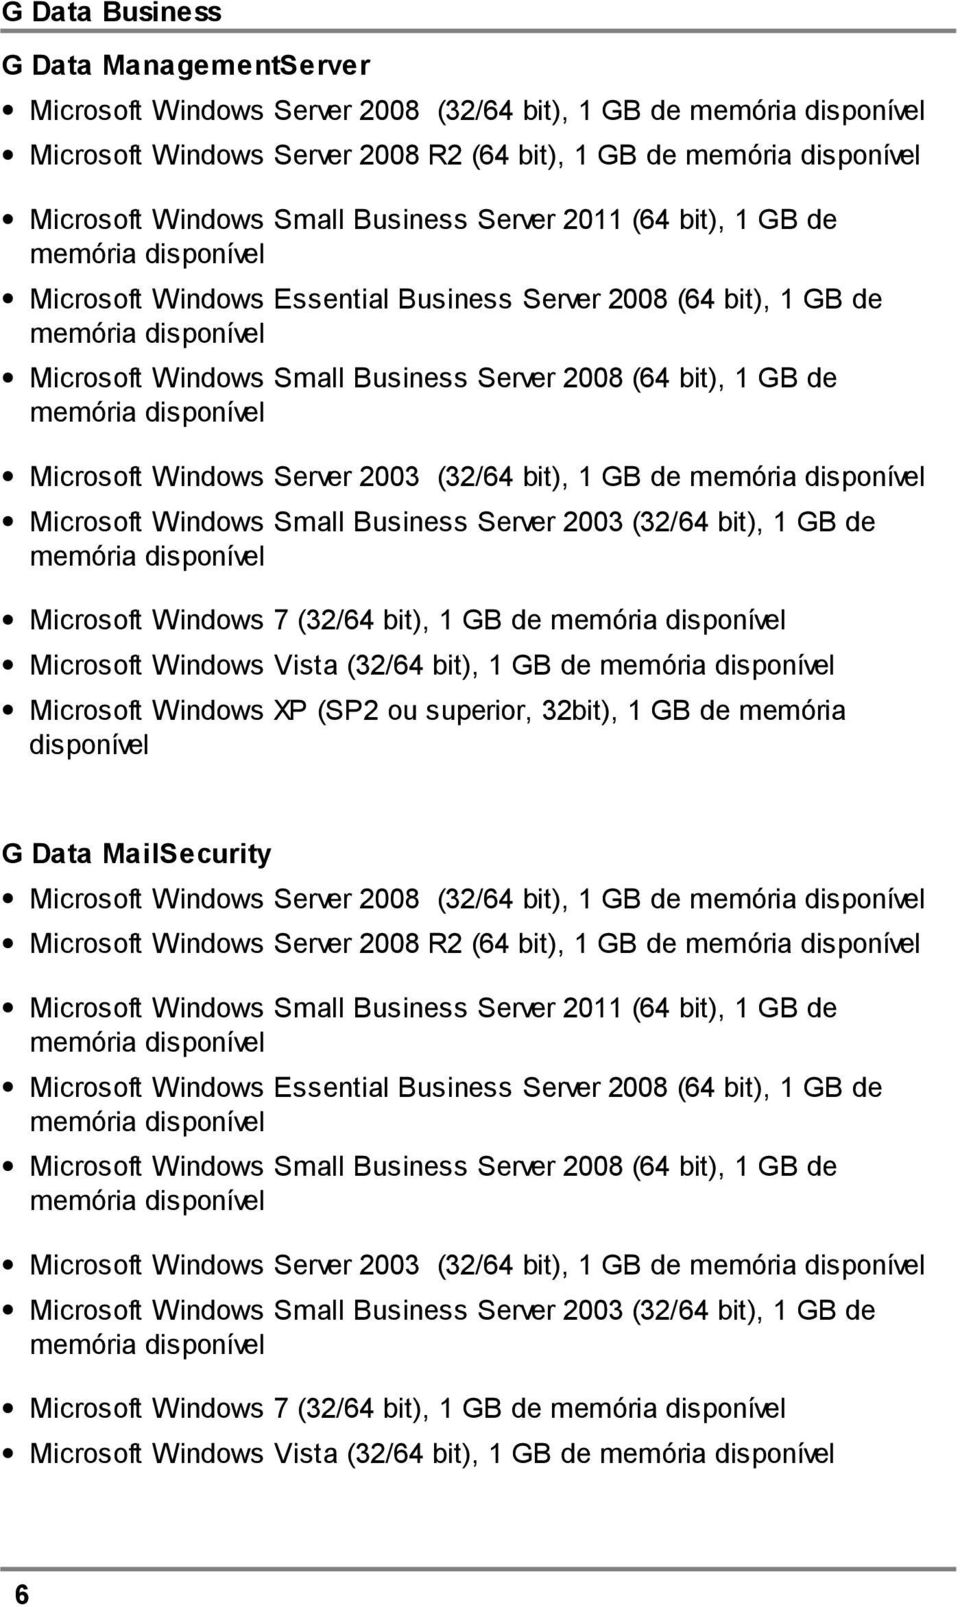 memória disponível Microsoft Windows Server 2003 (32/64 bit), 1 GB de memória disponível Microsoft Windows Small Business Server 2003 (32/64 bit), 1 GB de memória disponível Microsoft Windows 7